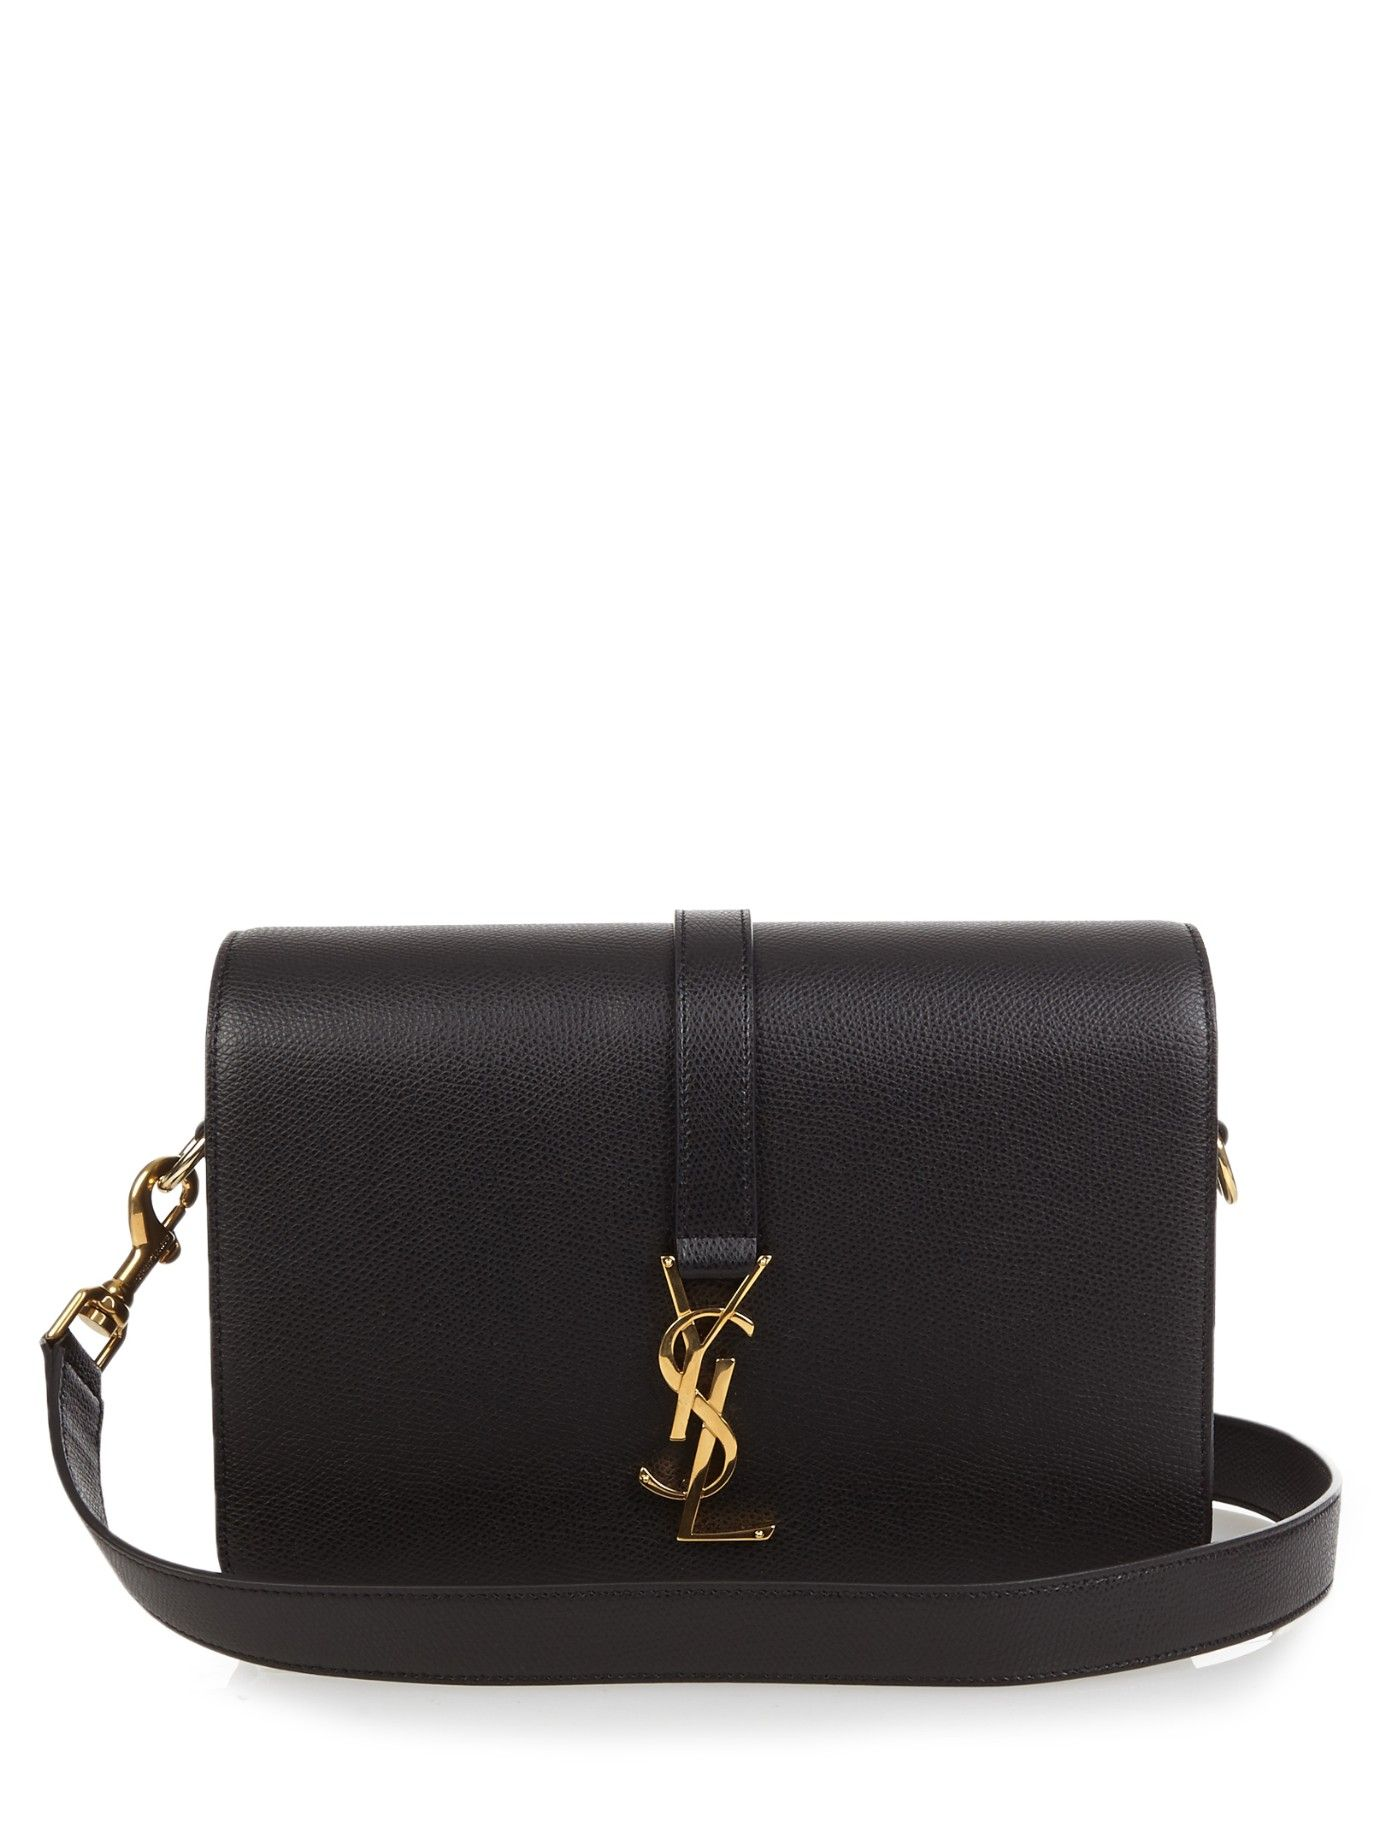 6240936af57 Université monogram leather cross-body bag | Saint Laurent |  MATCHESFASHION.COM UK